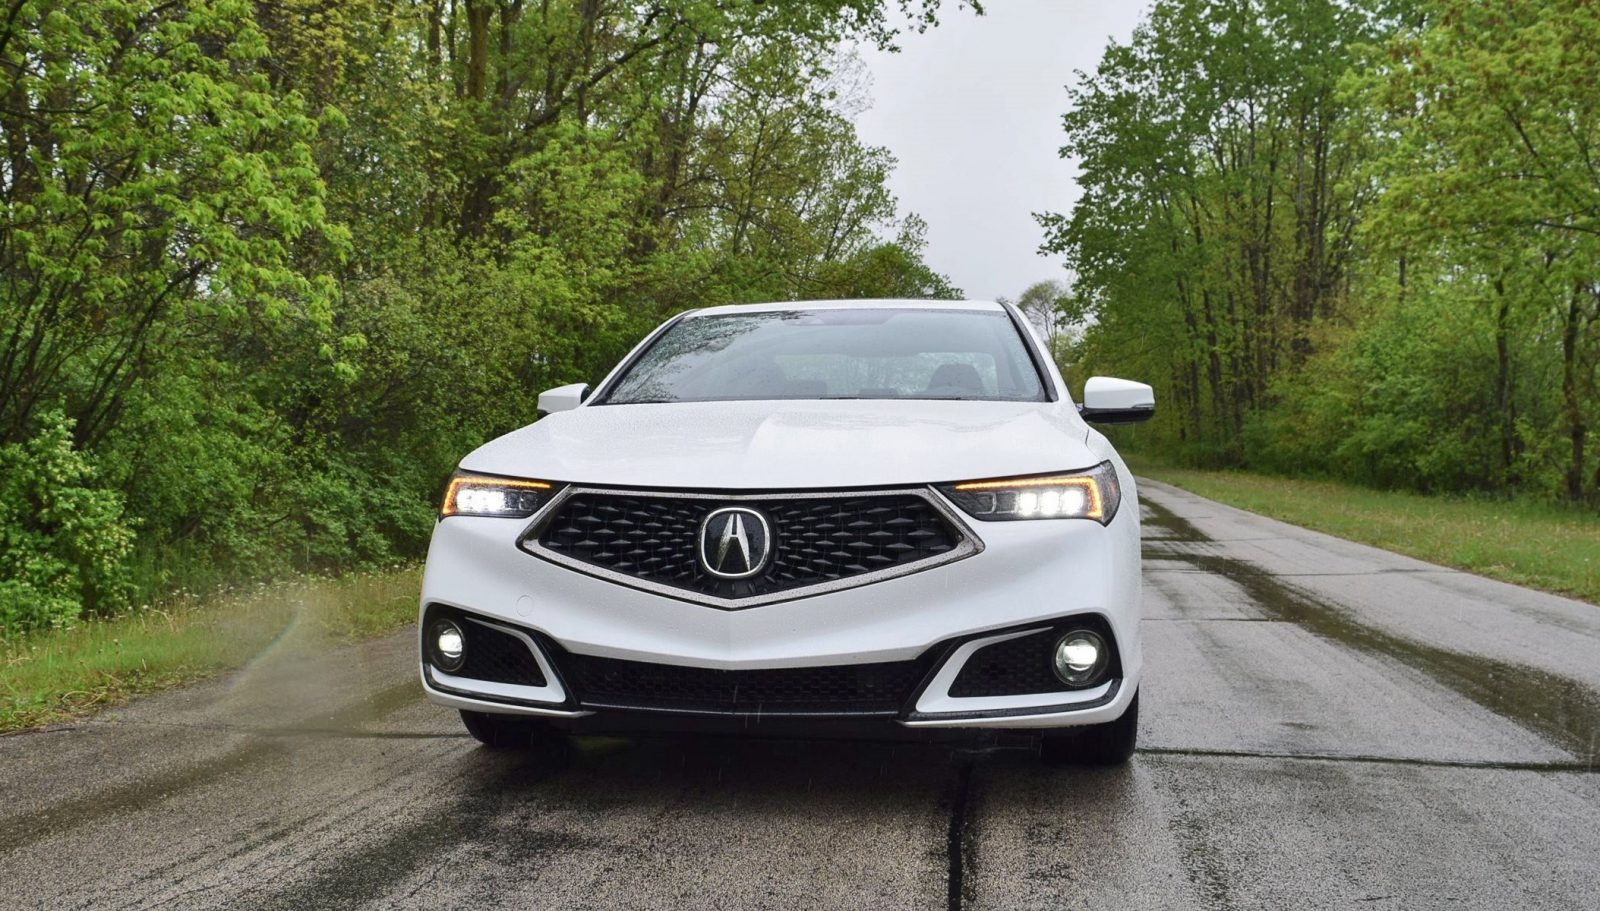 2018 Acura TLX A-Spec 25